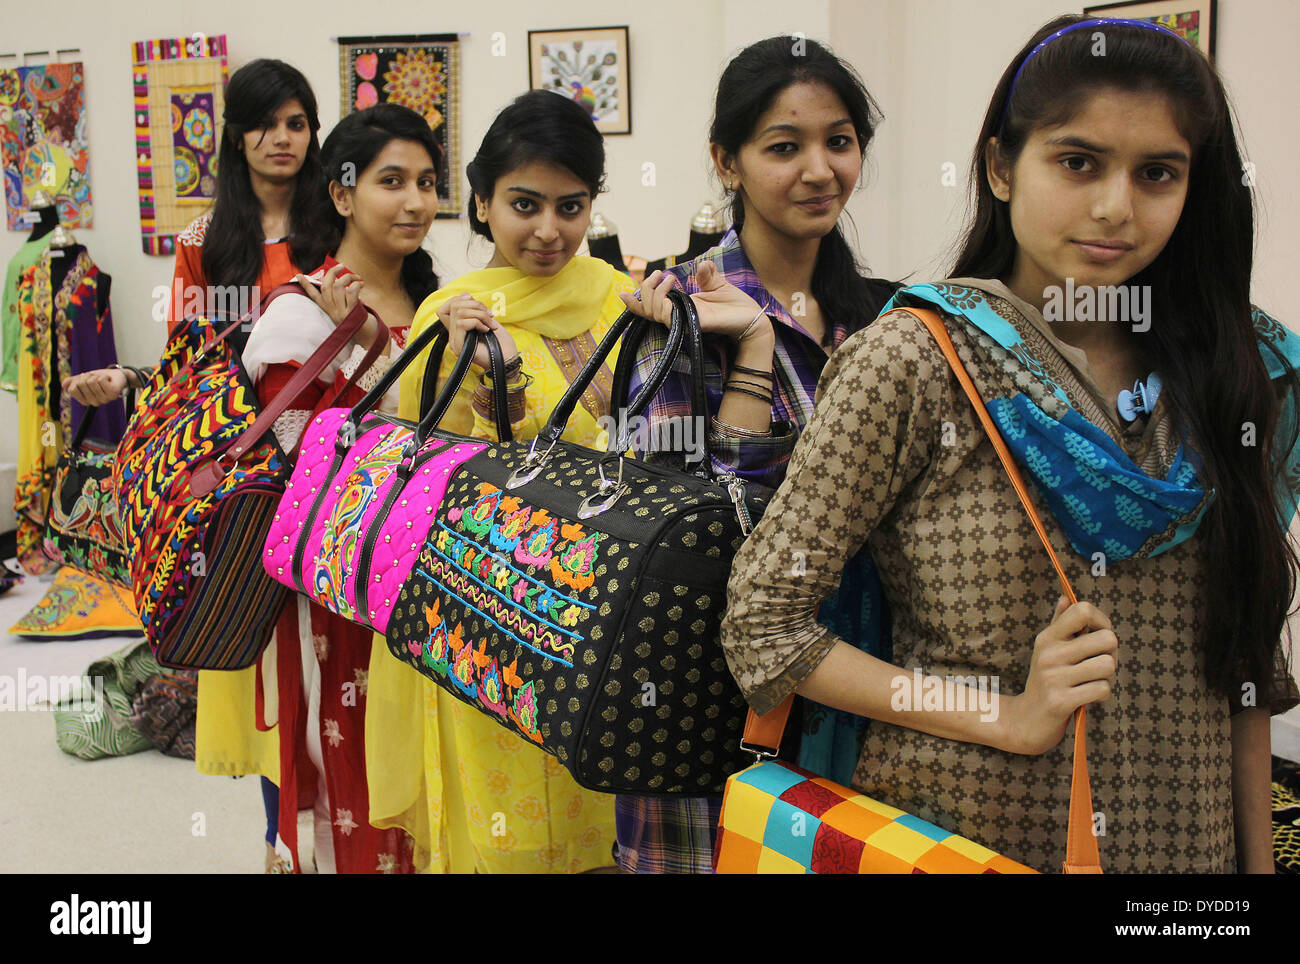 LAHORE, PAKISTAN - APRIL 15 : Pakistani students of (LCWU) Lahore